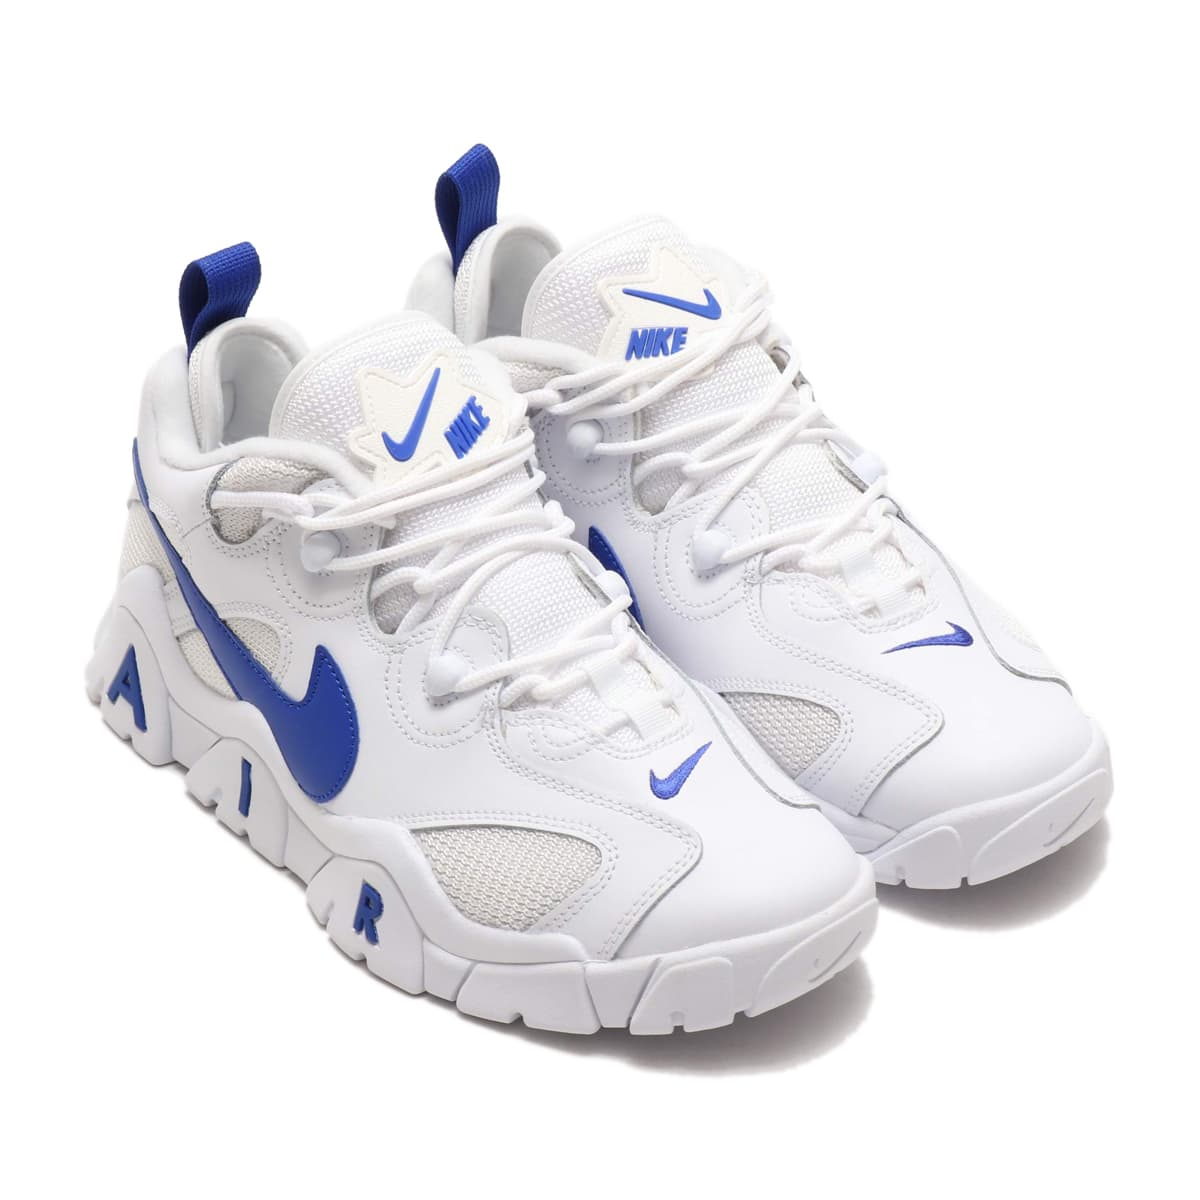 NIKE AIR BARRAGE LOW WHITE/HYPER BLUE 20SP-S_photo_large